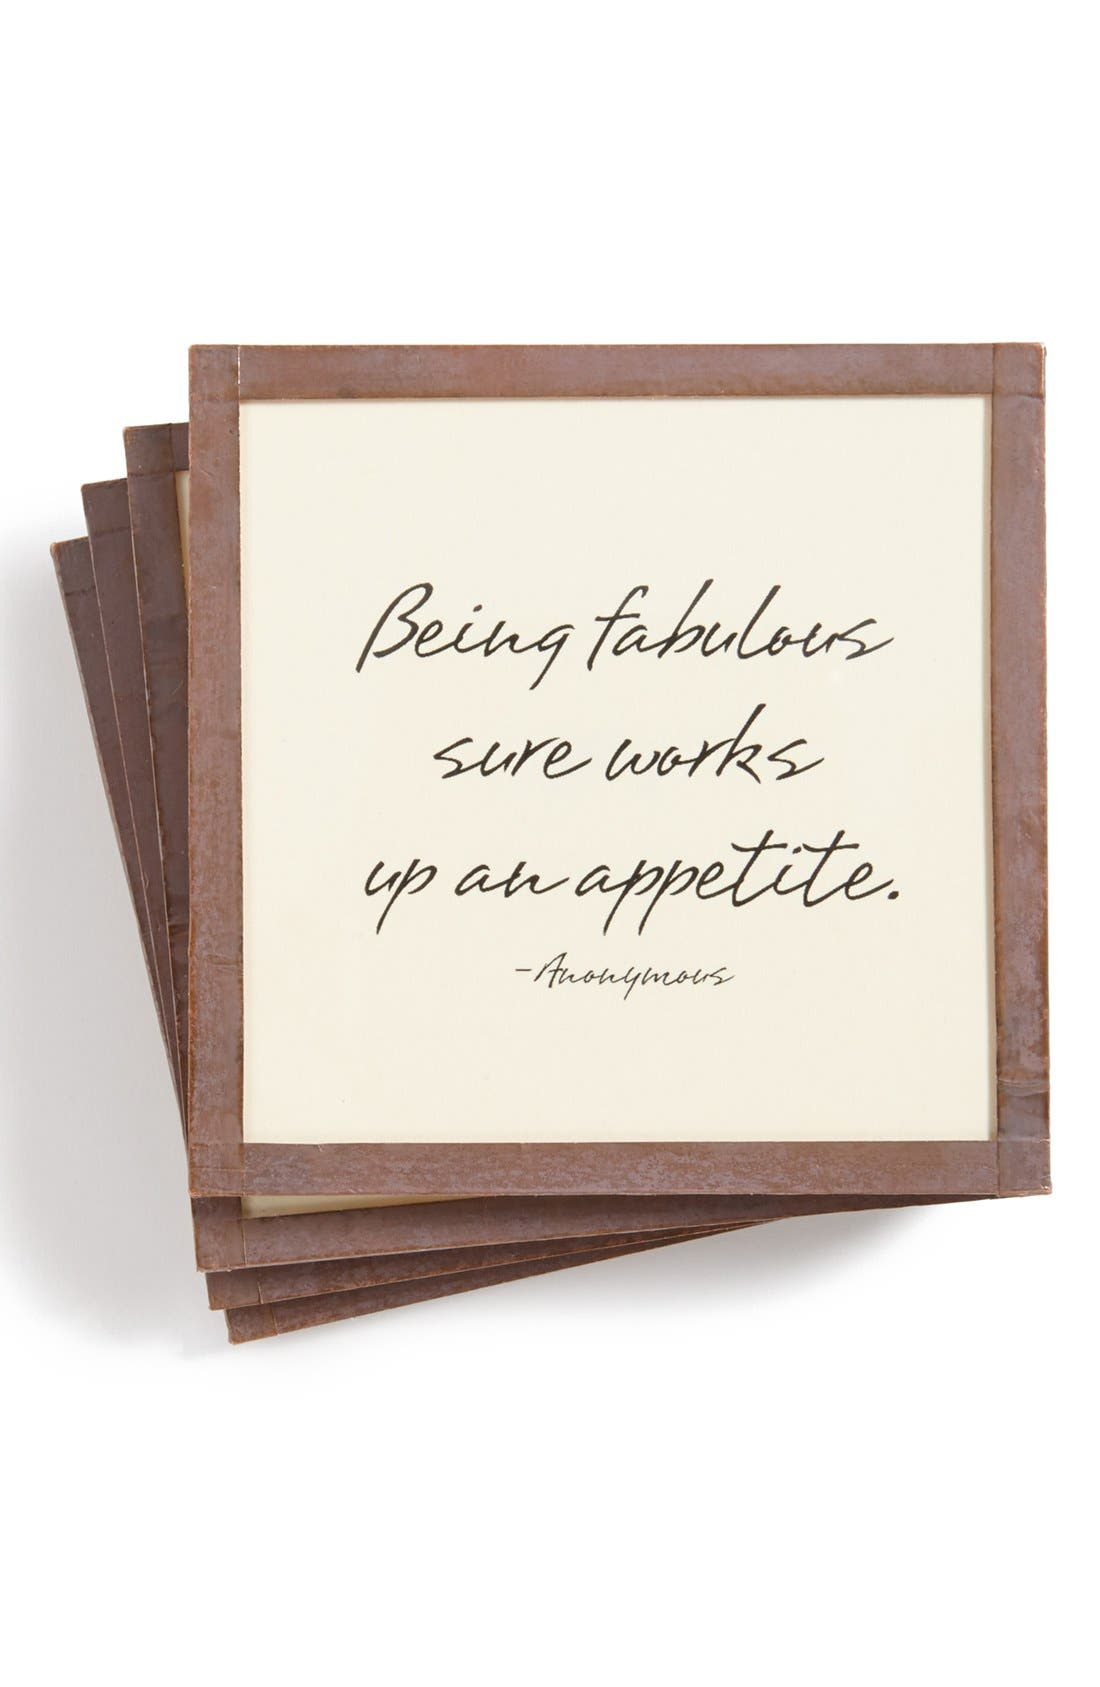 Alternate Image 1 Selected - Ben's Garden 'Being Fabulous' Coasters (Set of 4)